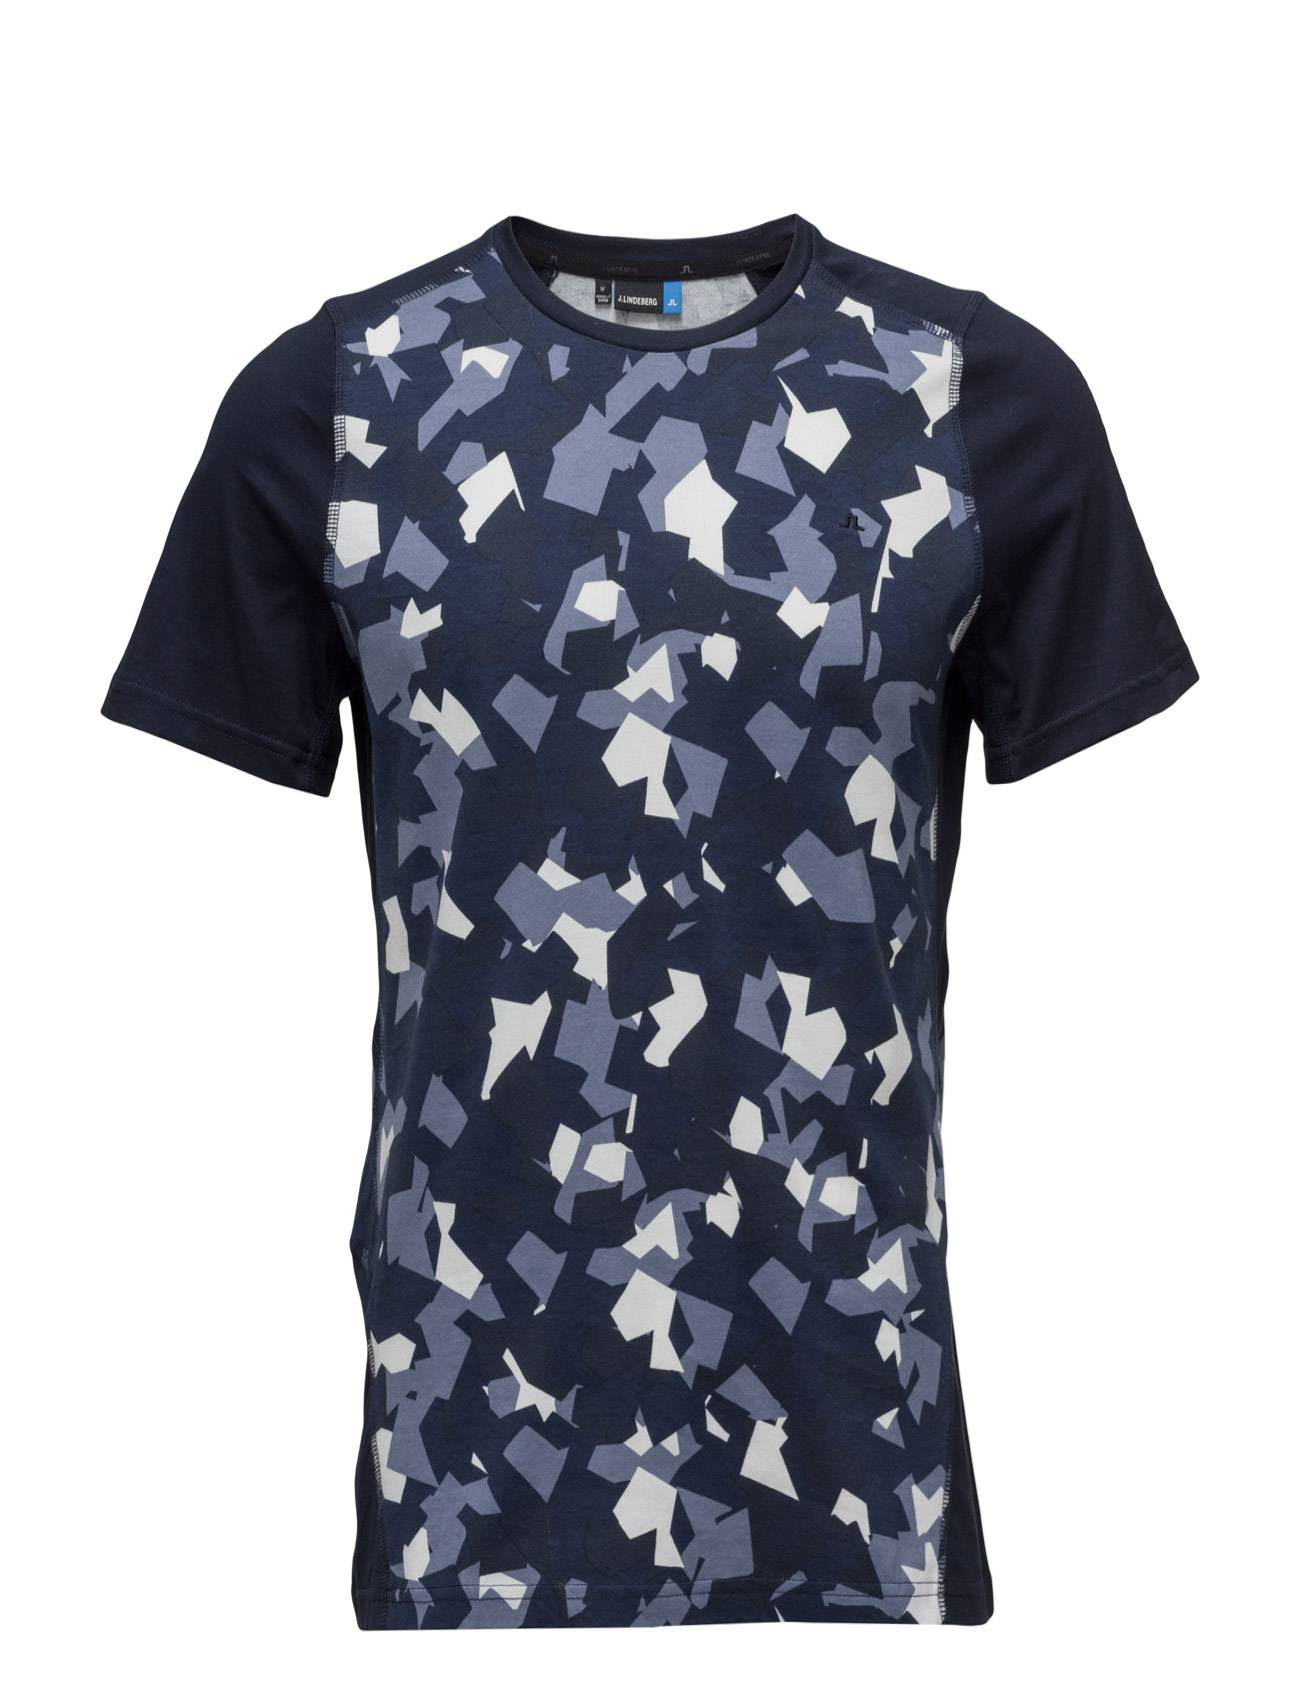 J. Lindeberg M Cotton T-Shirt Liquid Jersey